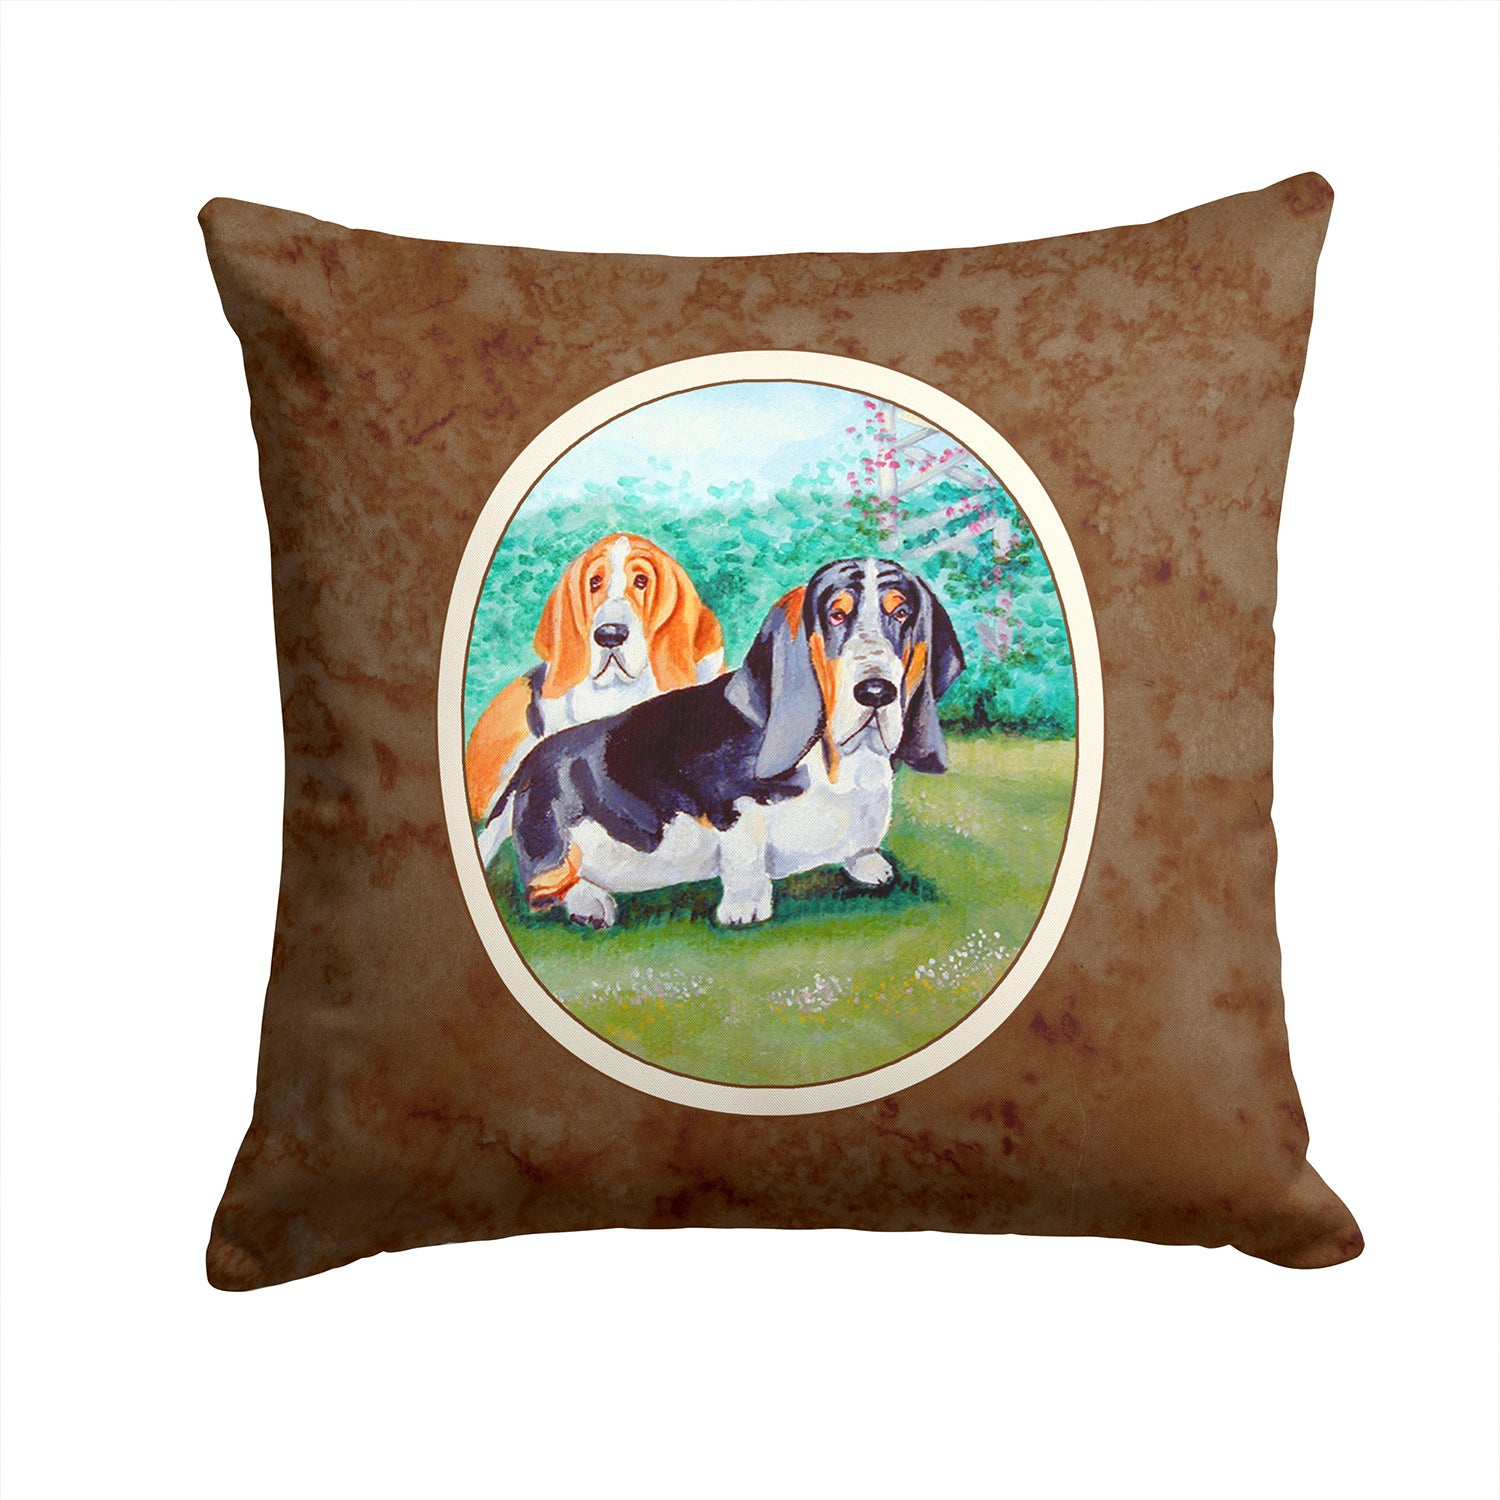 Buy this Basset Hound Double Trouble Fabric Decorative Pillow 7061PW1414